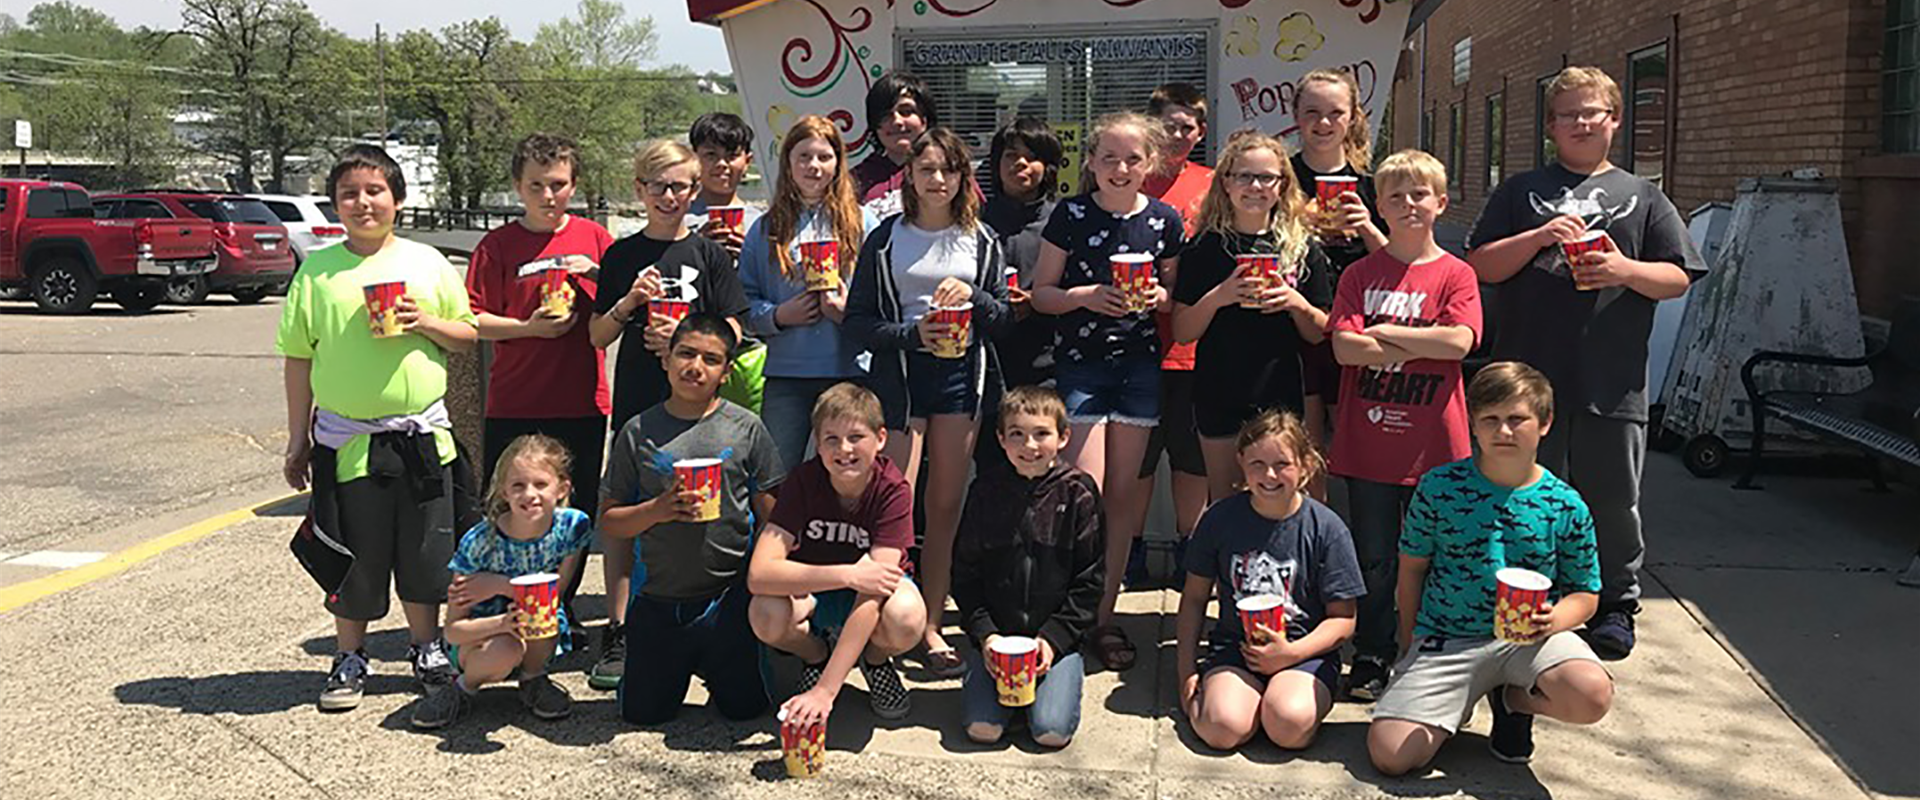 Bert Raney Elementary School visited the Kiwanis Popcorn Stand today!